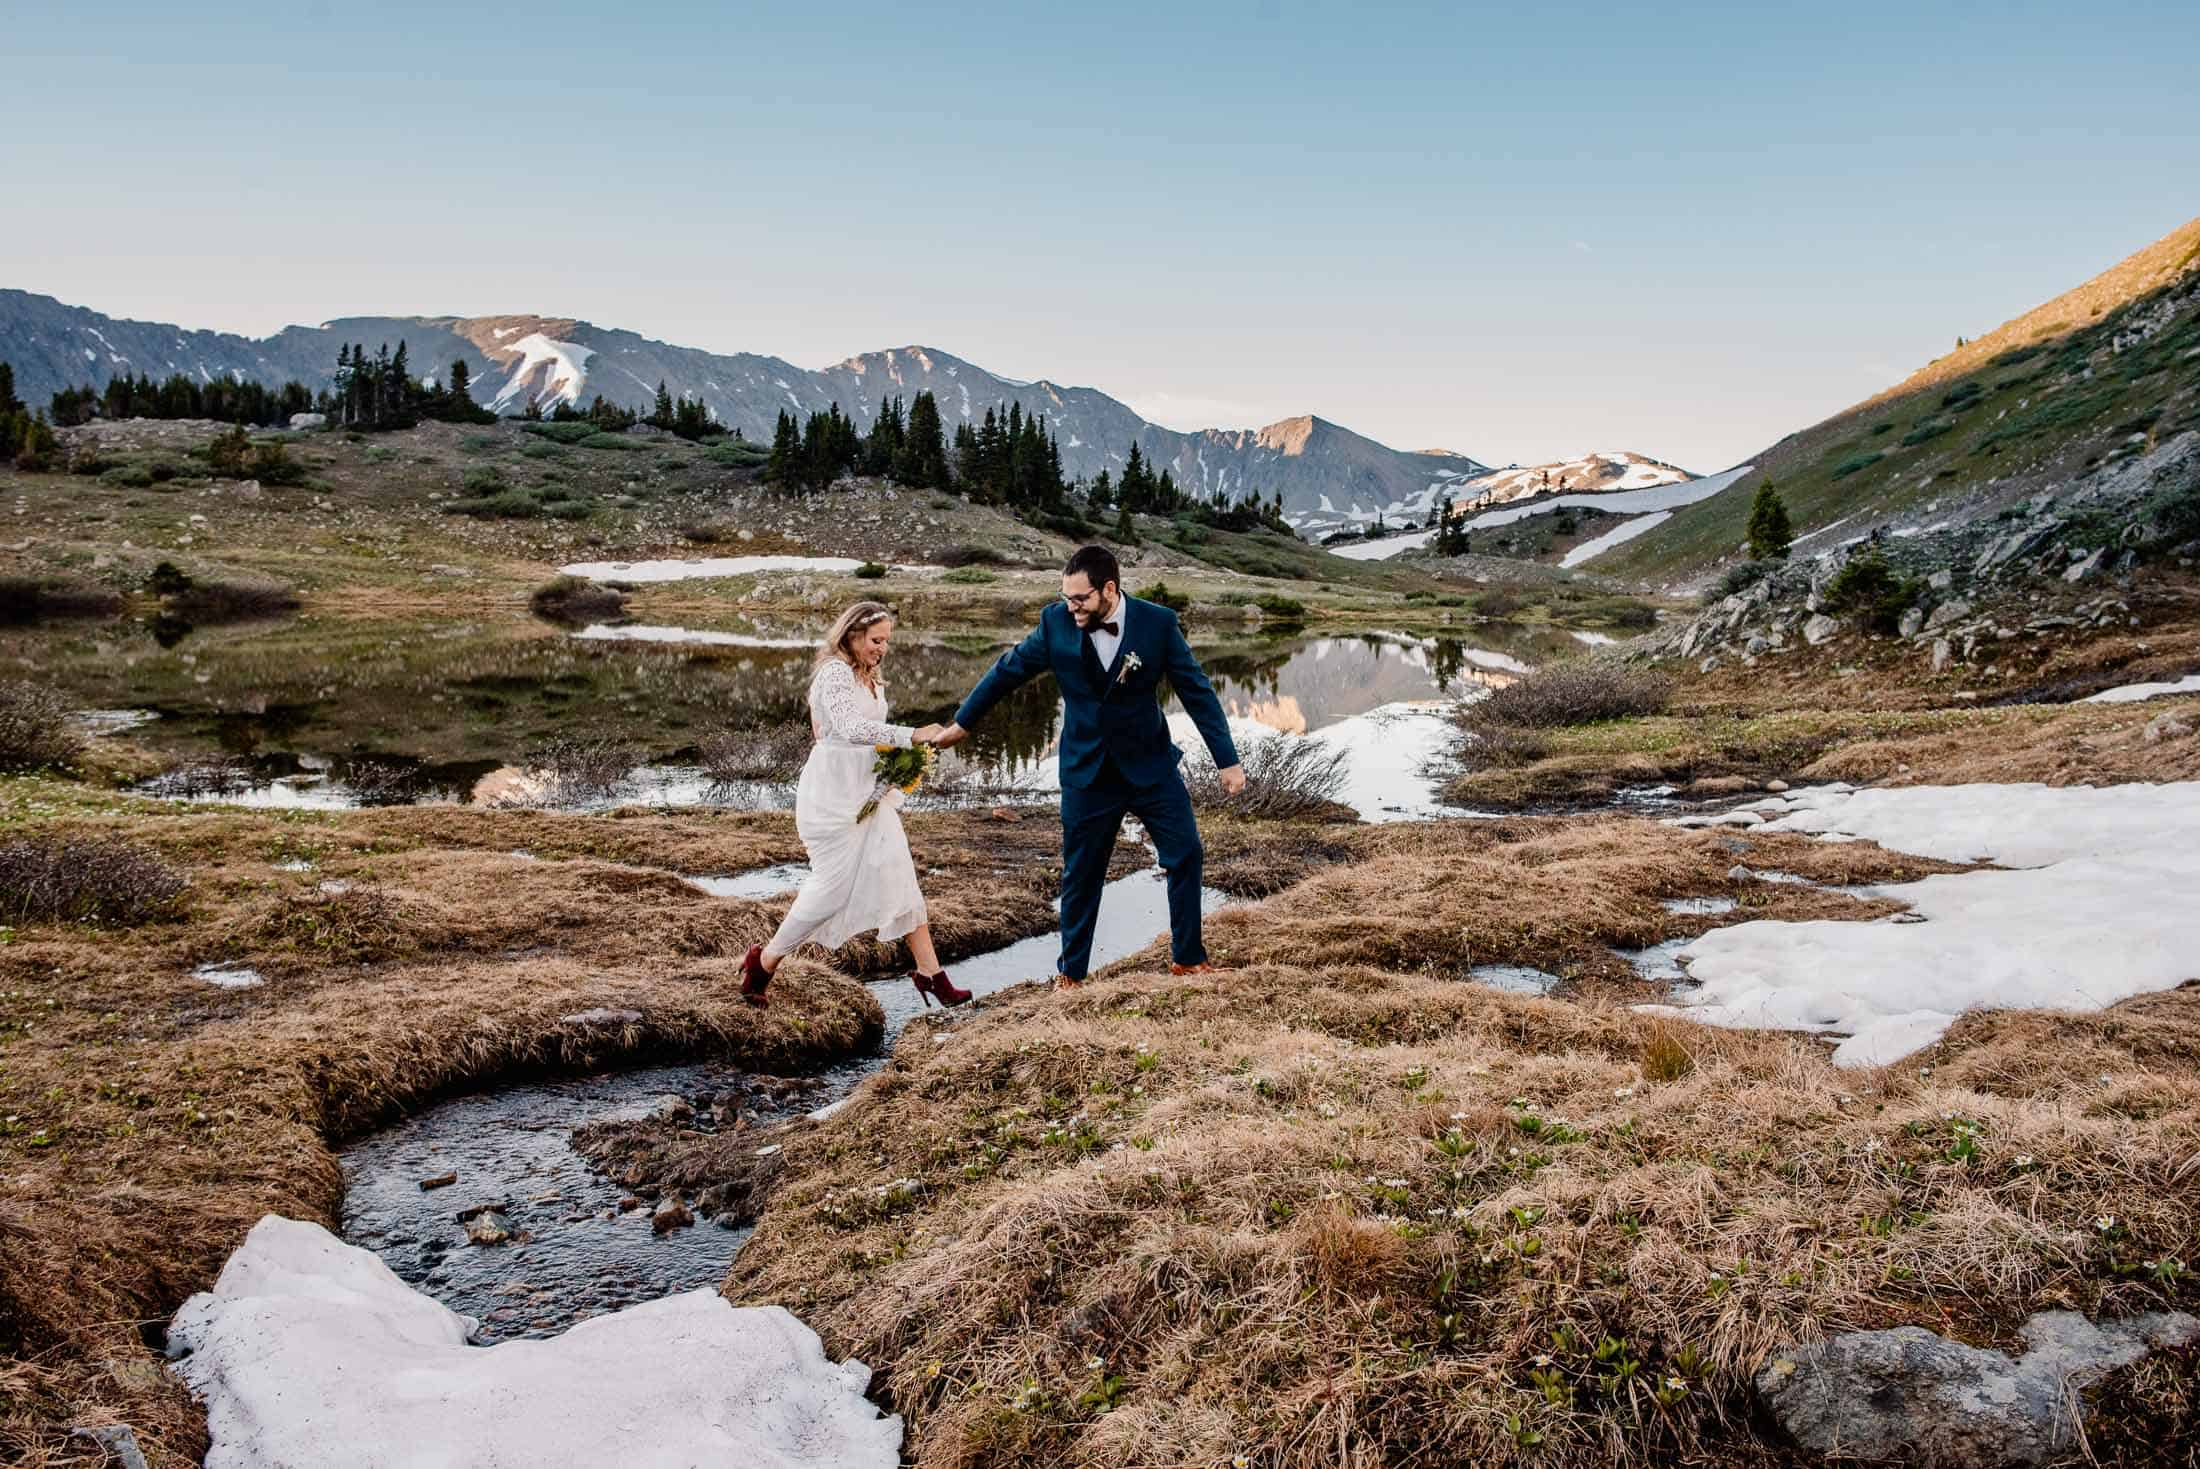 couple who decided to find the best places to elope in colorado getting married and walking over a river